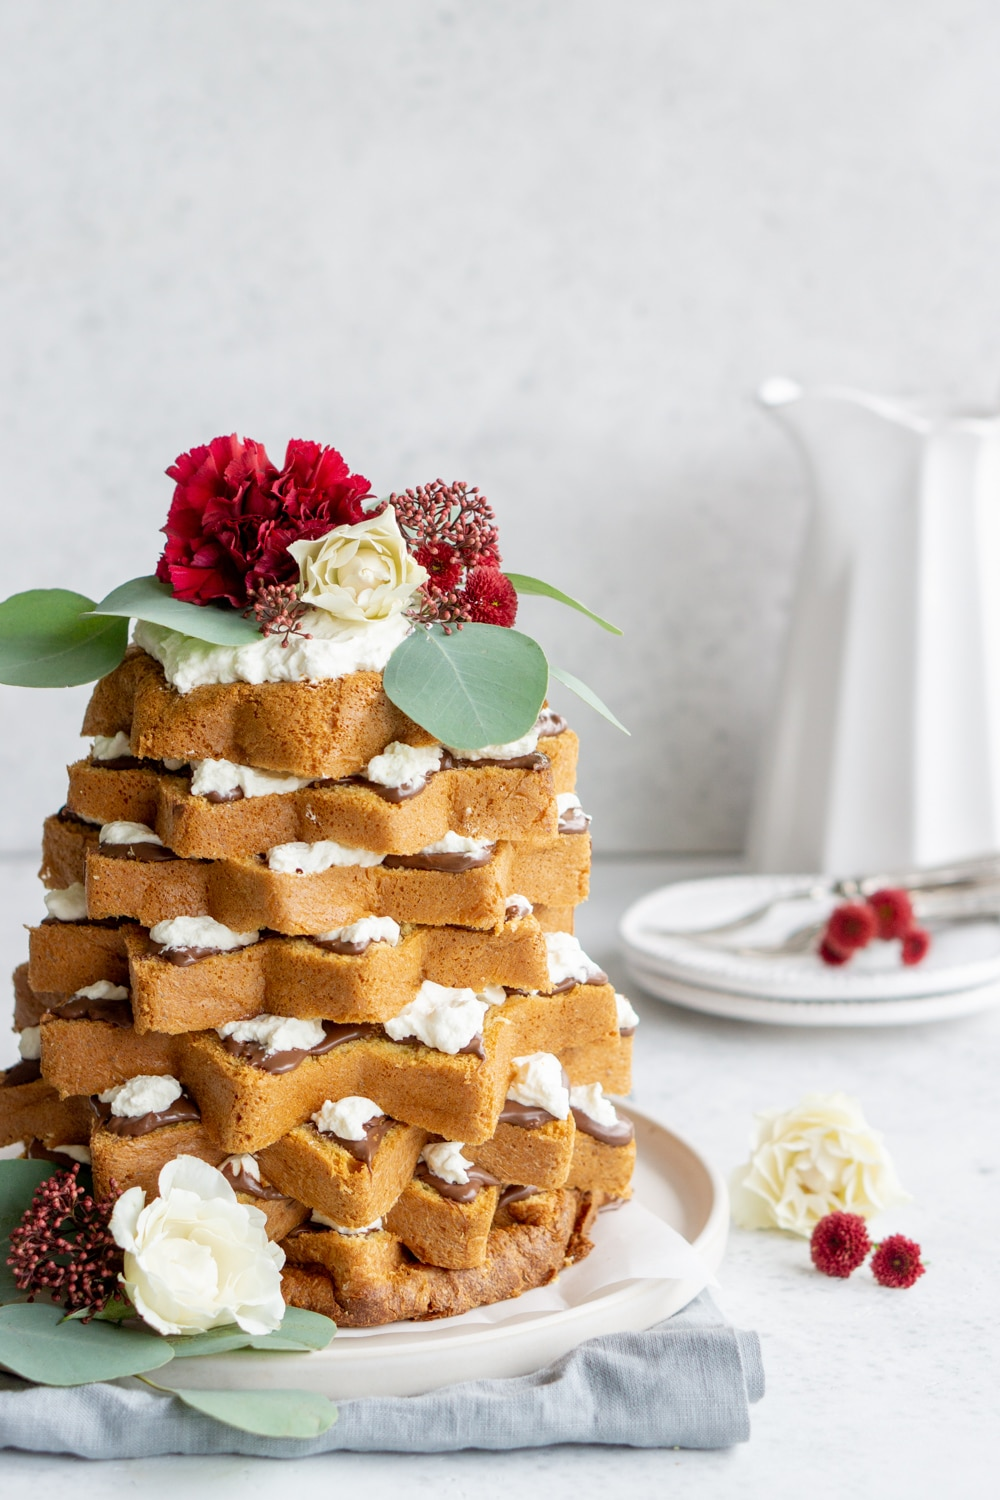 Pandoro Christmas tree cake with flowers on top and a vase in the background